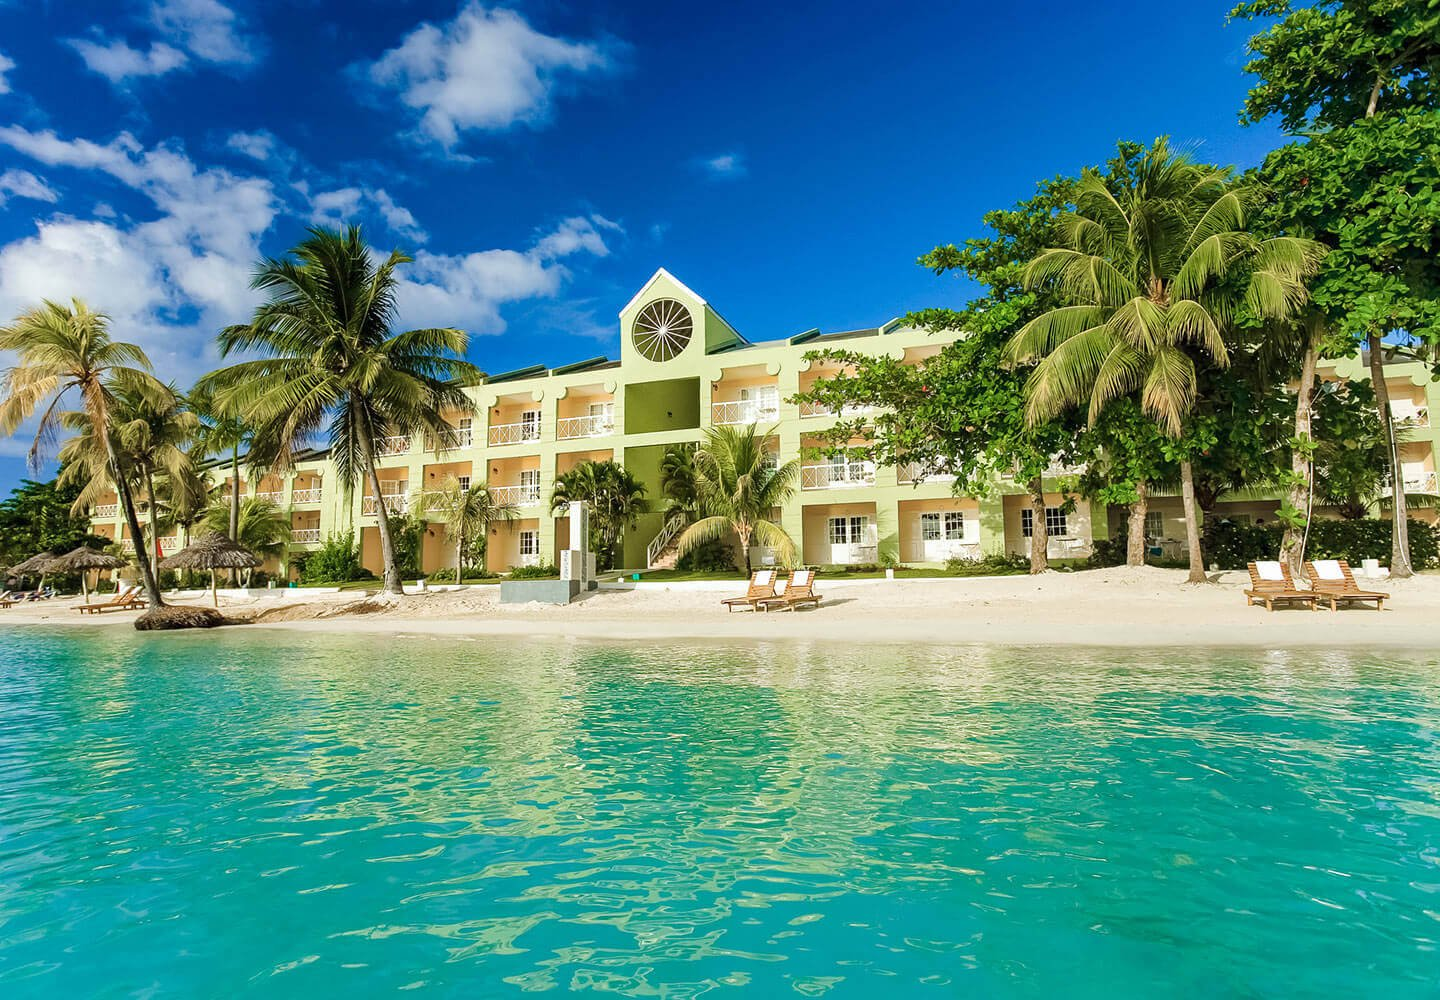 Sandals Negril - Luxury Vacations